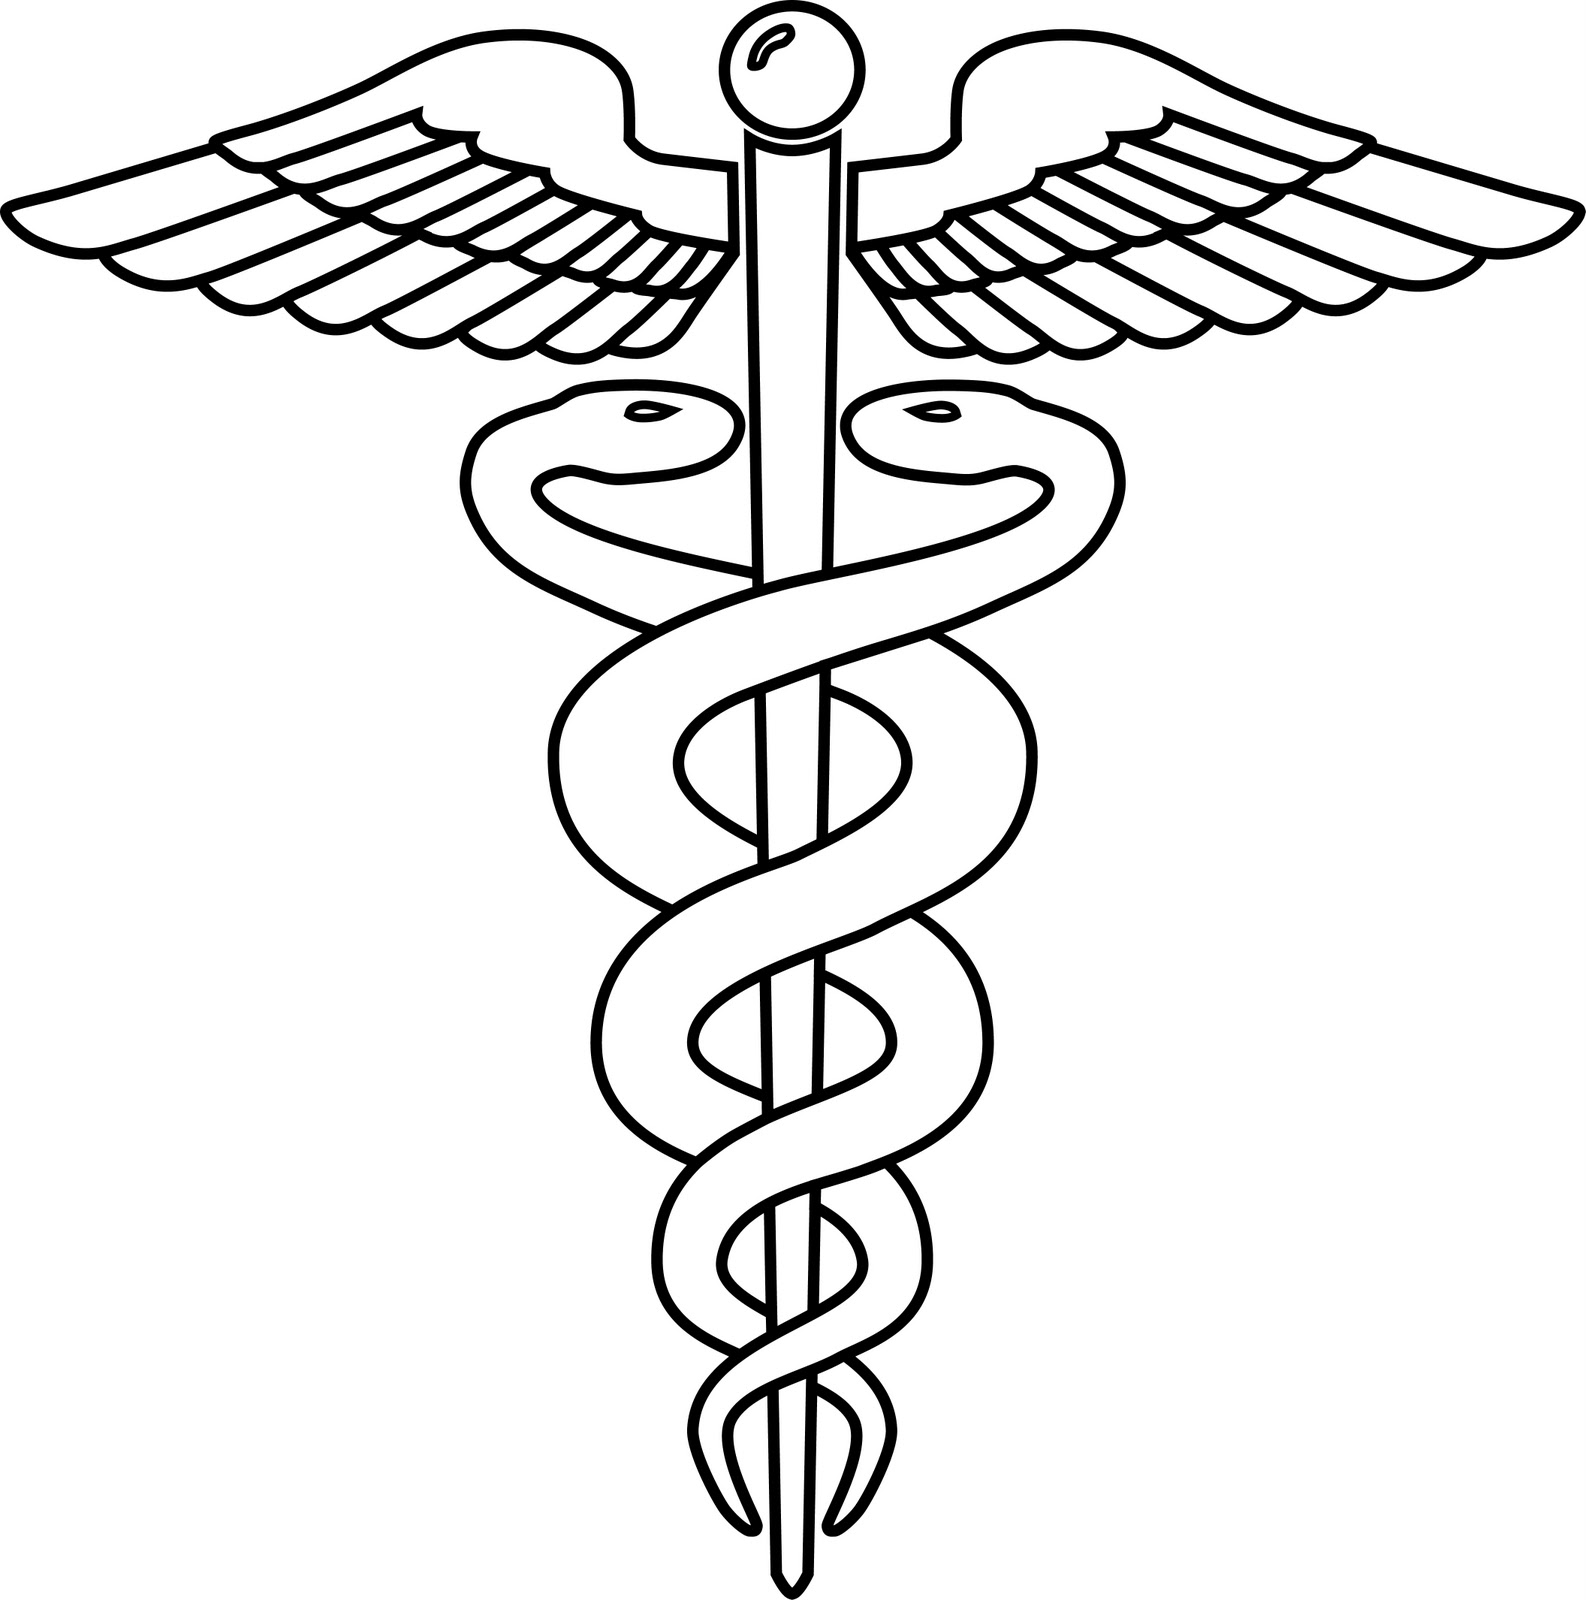 Urbanarchitexture can an architect be a humanist the caduceus the snake entwined staff that symbolizes medical practice is invoked by davies as the illustration of this tension with the right hand snake buycottarizona